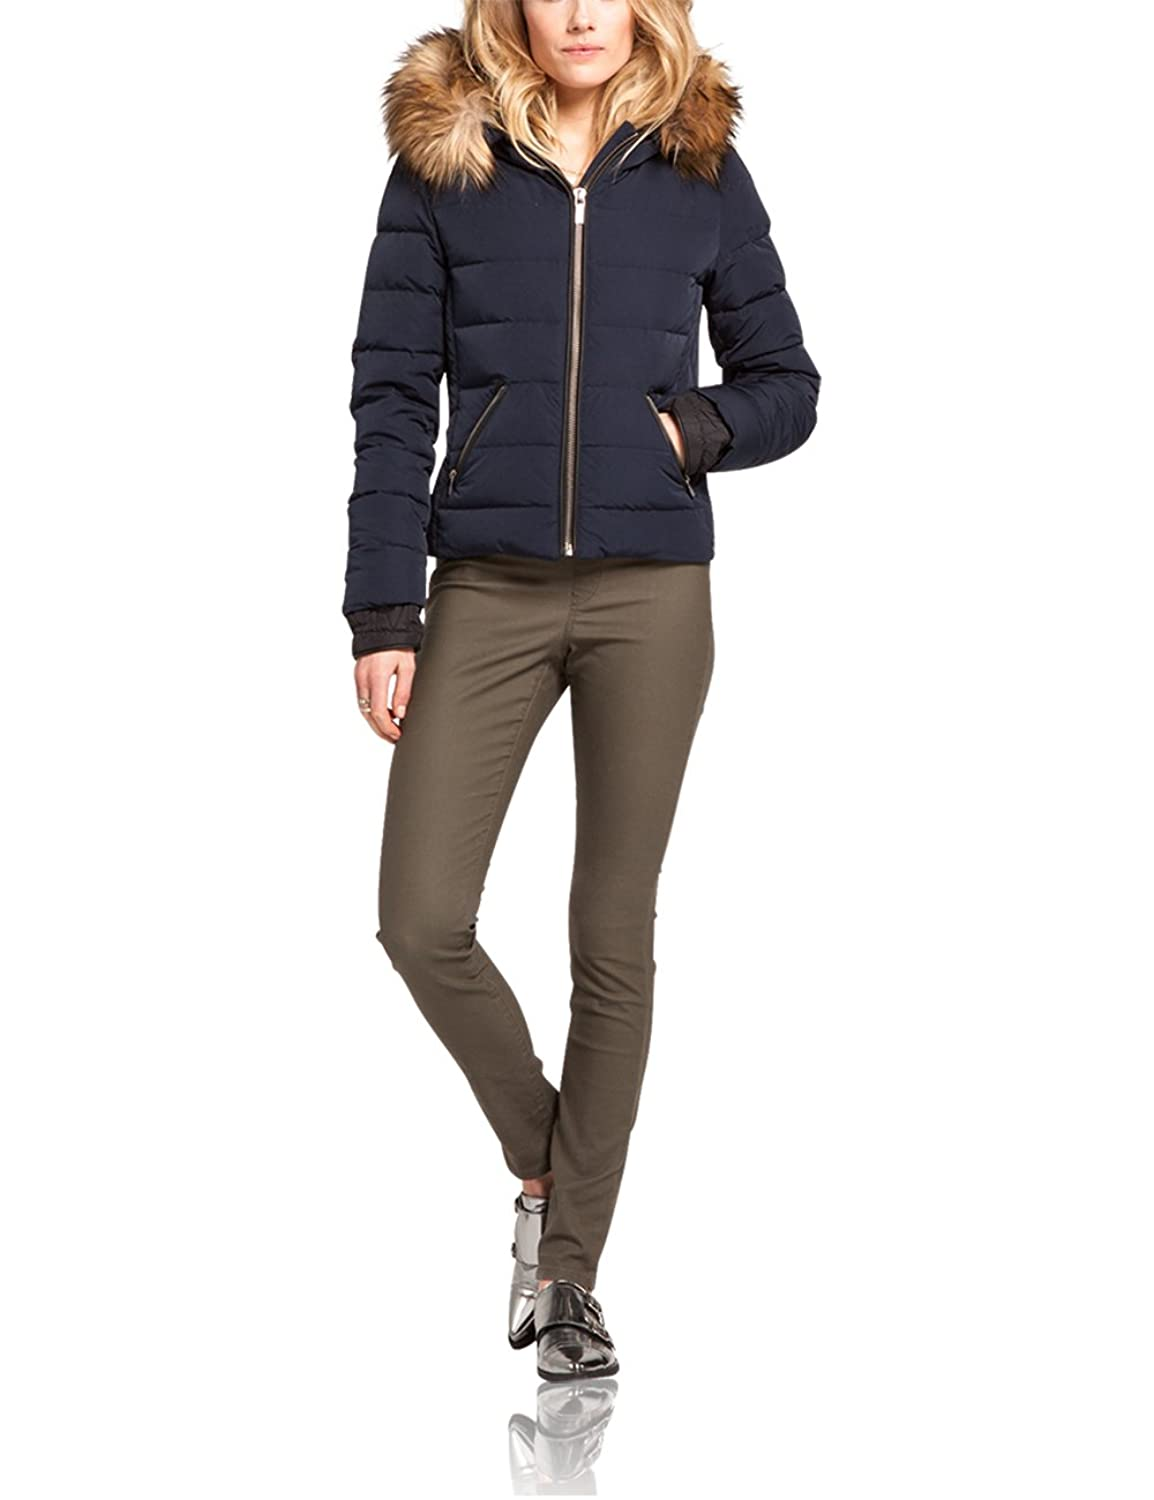 Maison Scotch Damen Daunenjacke 14240910706